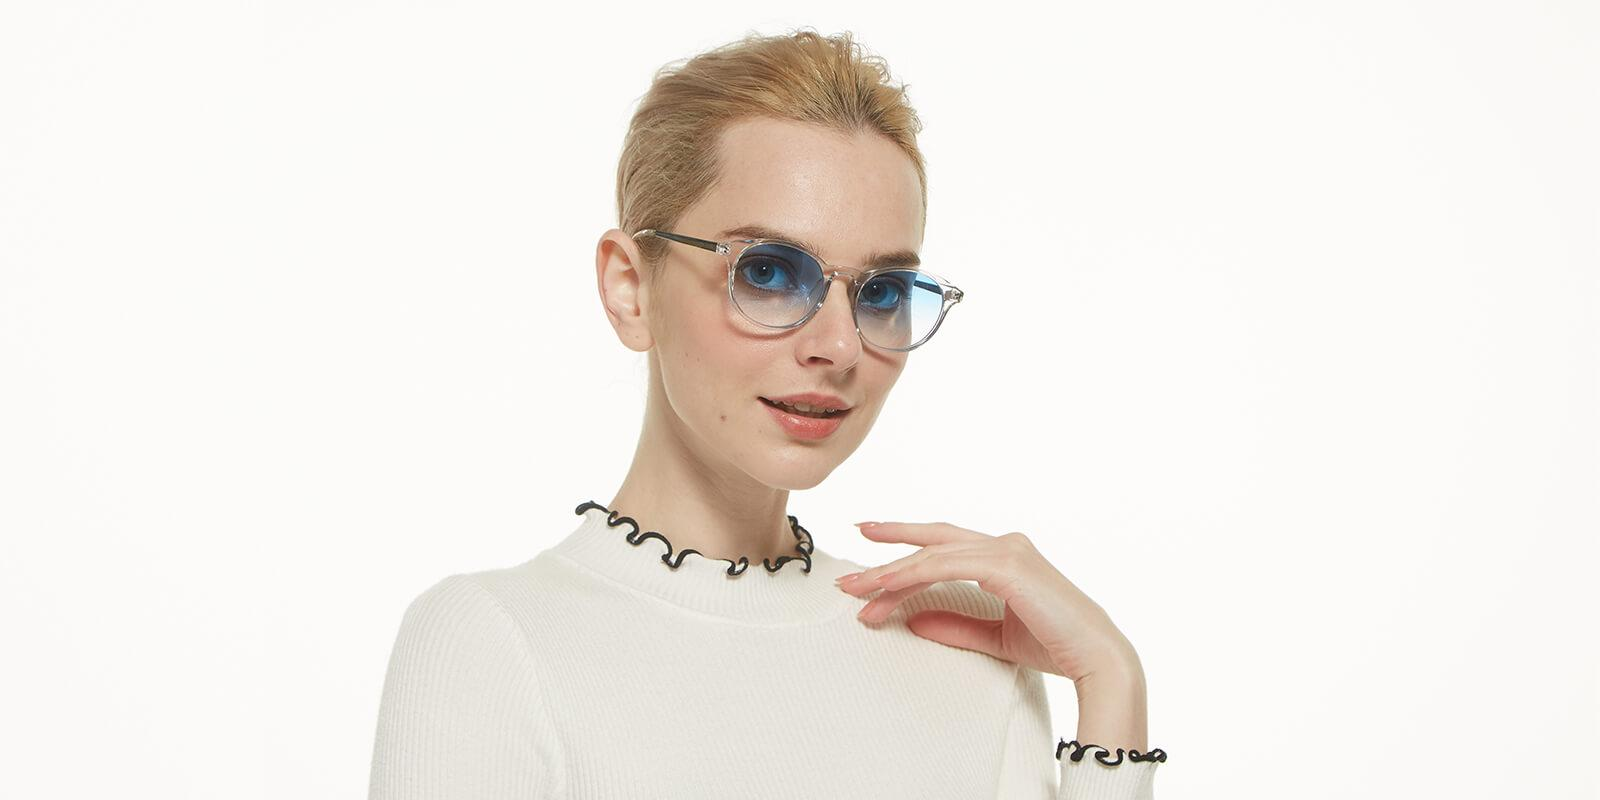 Memoria-Translucent-Combination / Metal / TR-Sunglasses-detail1